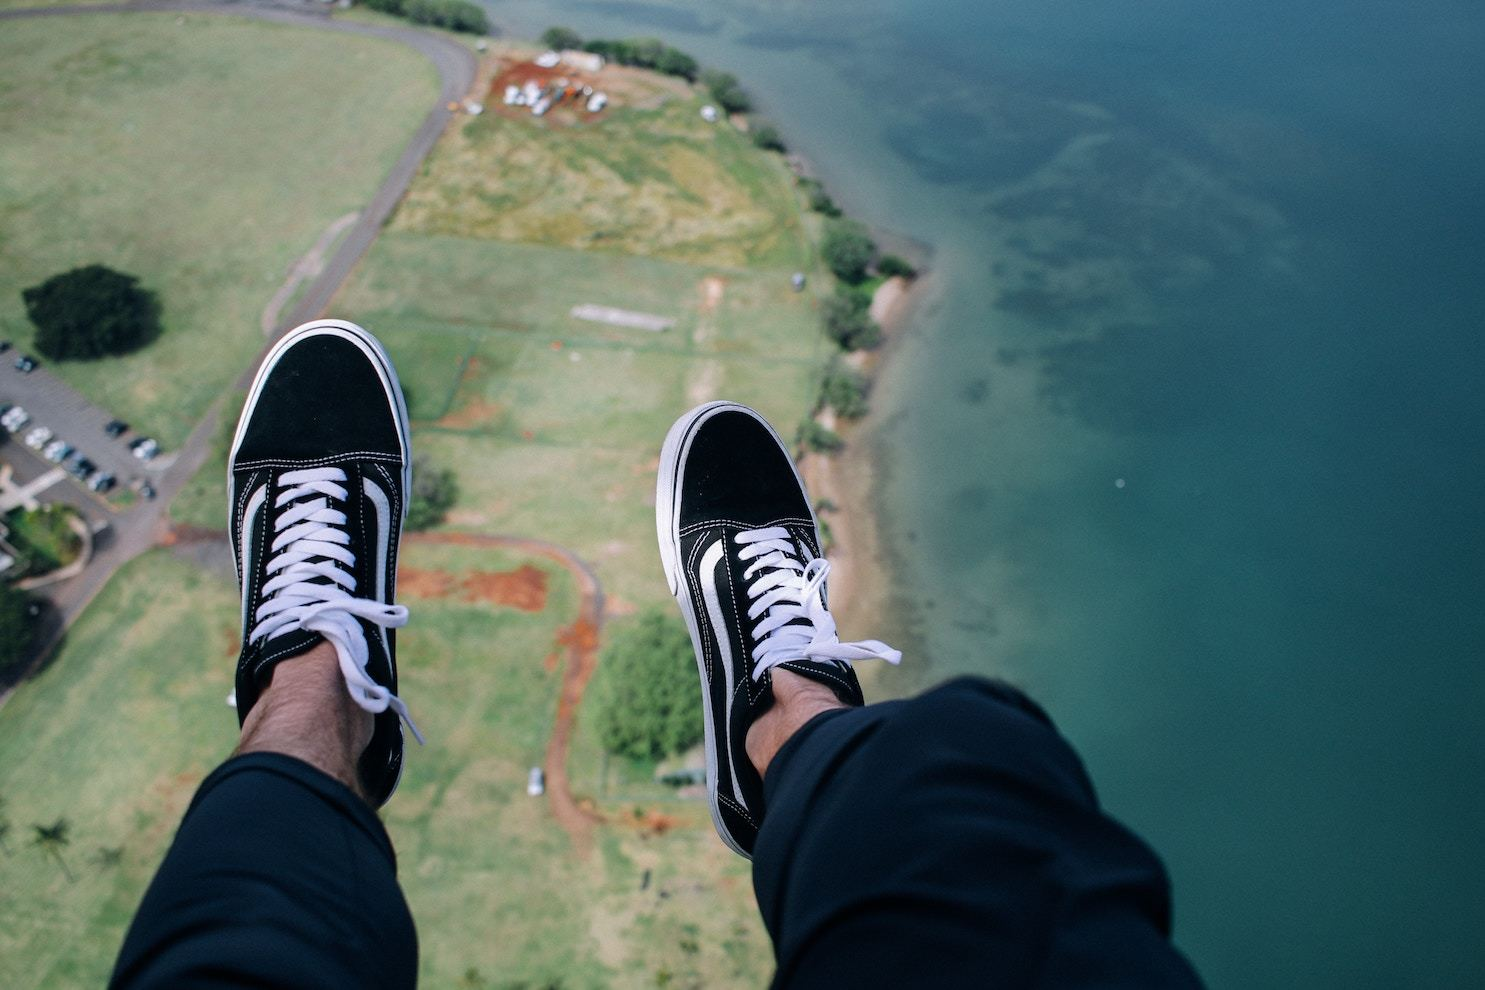 A man's legs, in baggy pants and sneakers, hang above the shoreline as seen from above